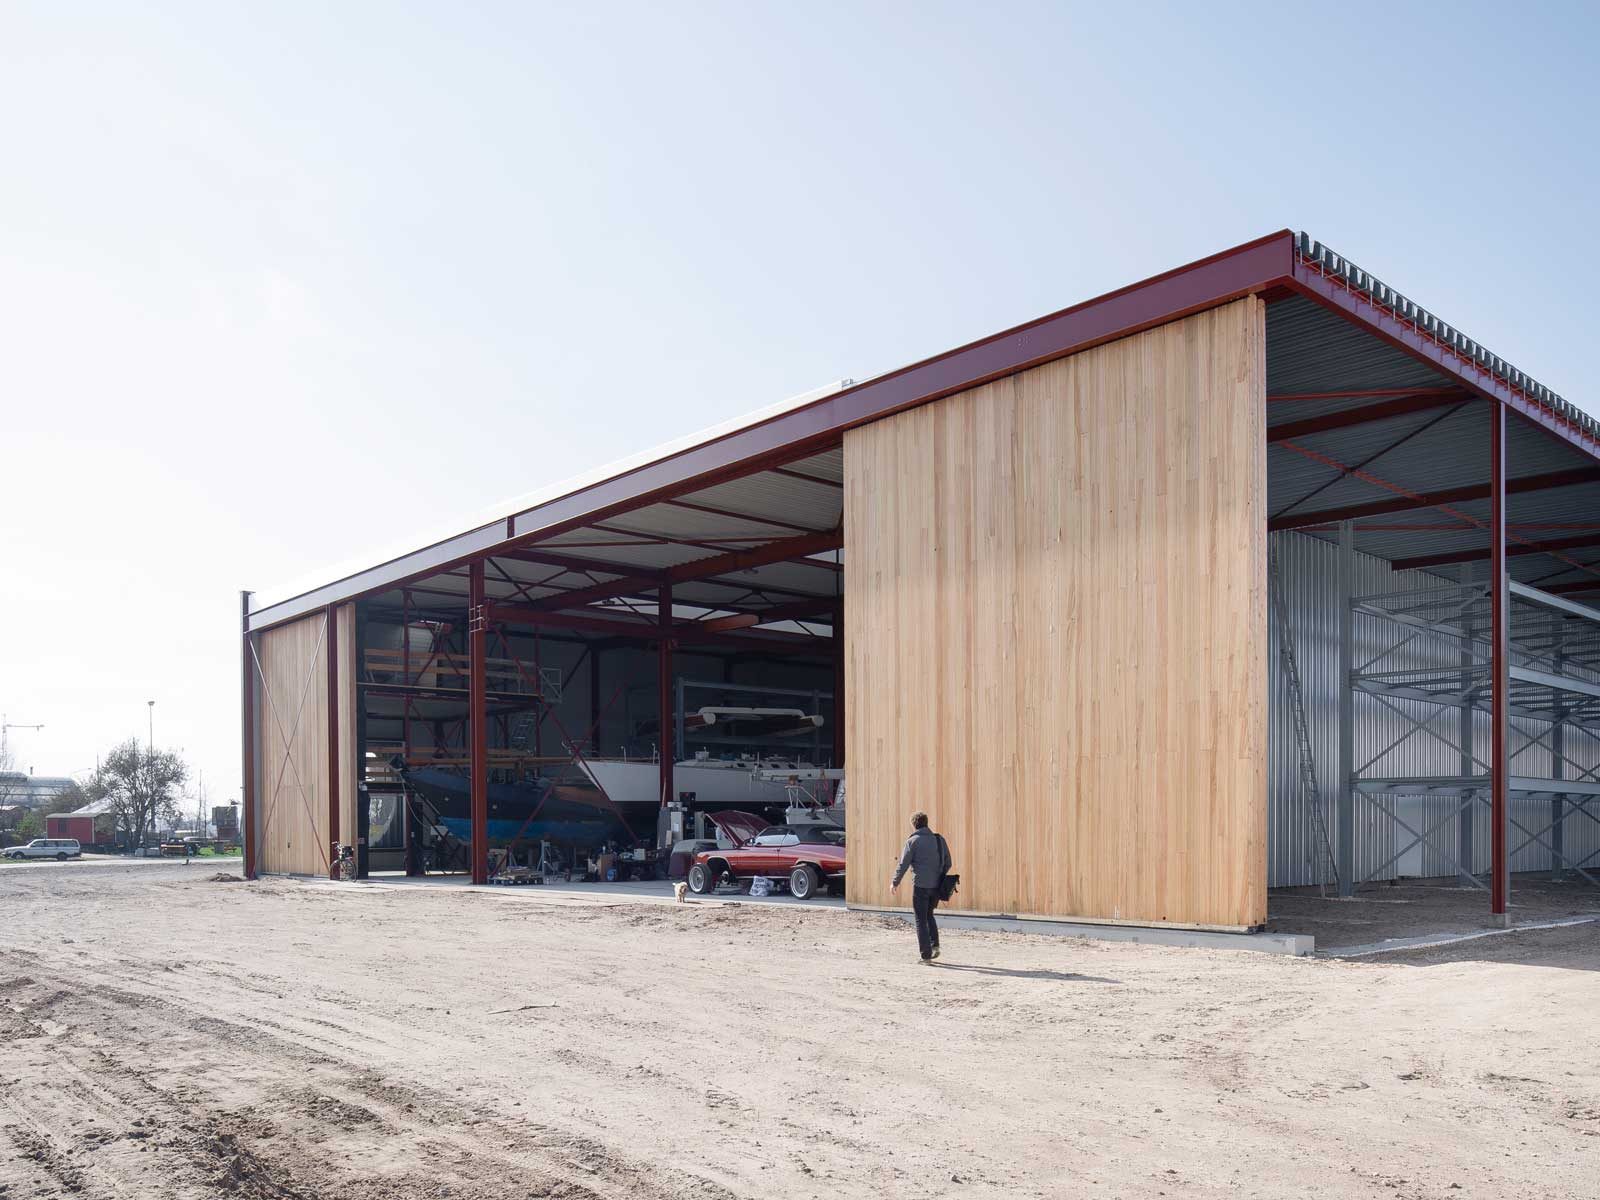 exterior photo showing timber sliding hangar doors fully open with boats inside